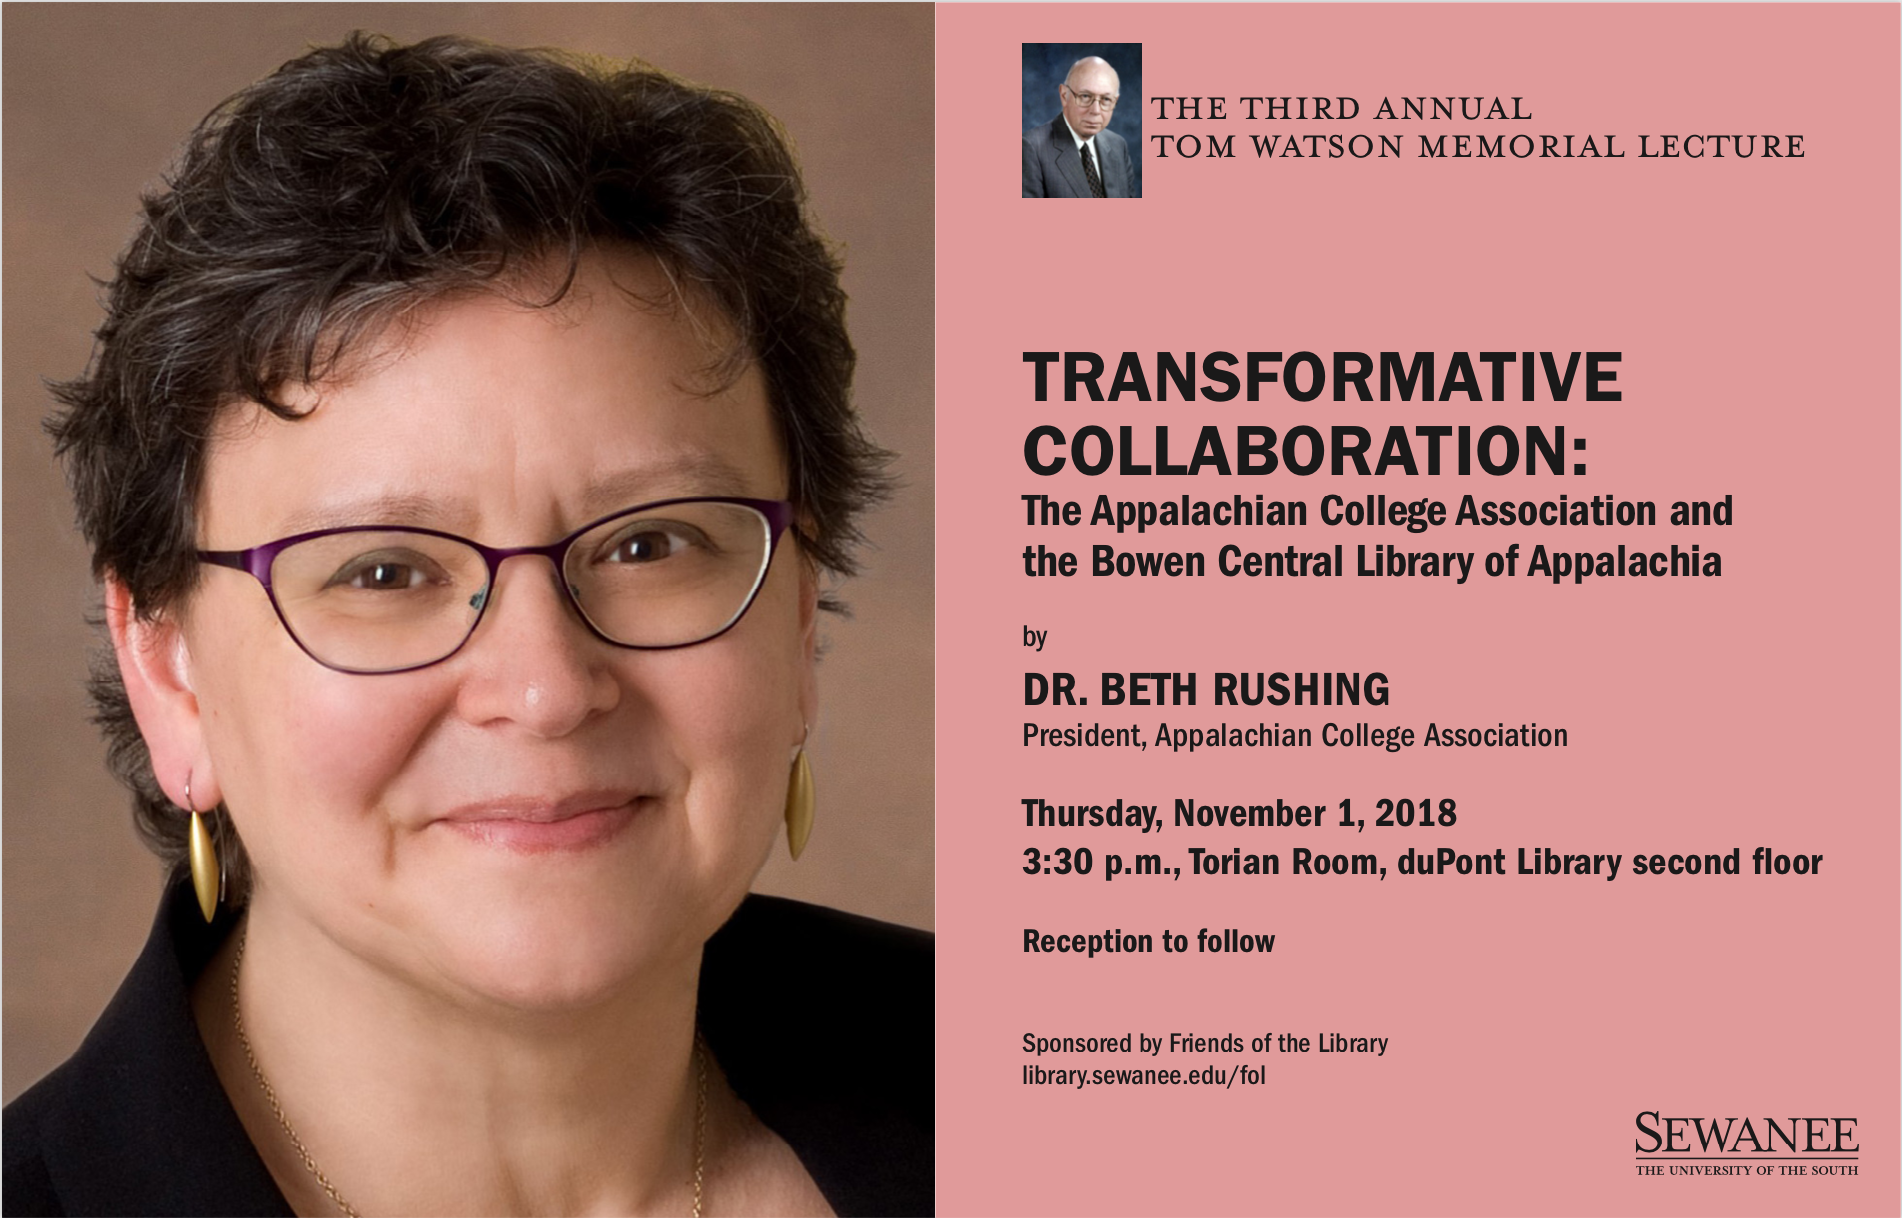 Dr. Beth Rushing, President of the Appalachian College Association, will be visiting duPont Library on Thursday, November 1. The talk is at 3:30 pm in the Torian Room on the second floor. A reception will follow. This is the third annual Tom Watson Memorial Lecture.